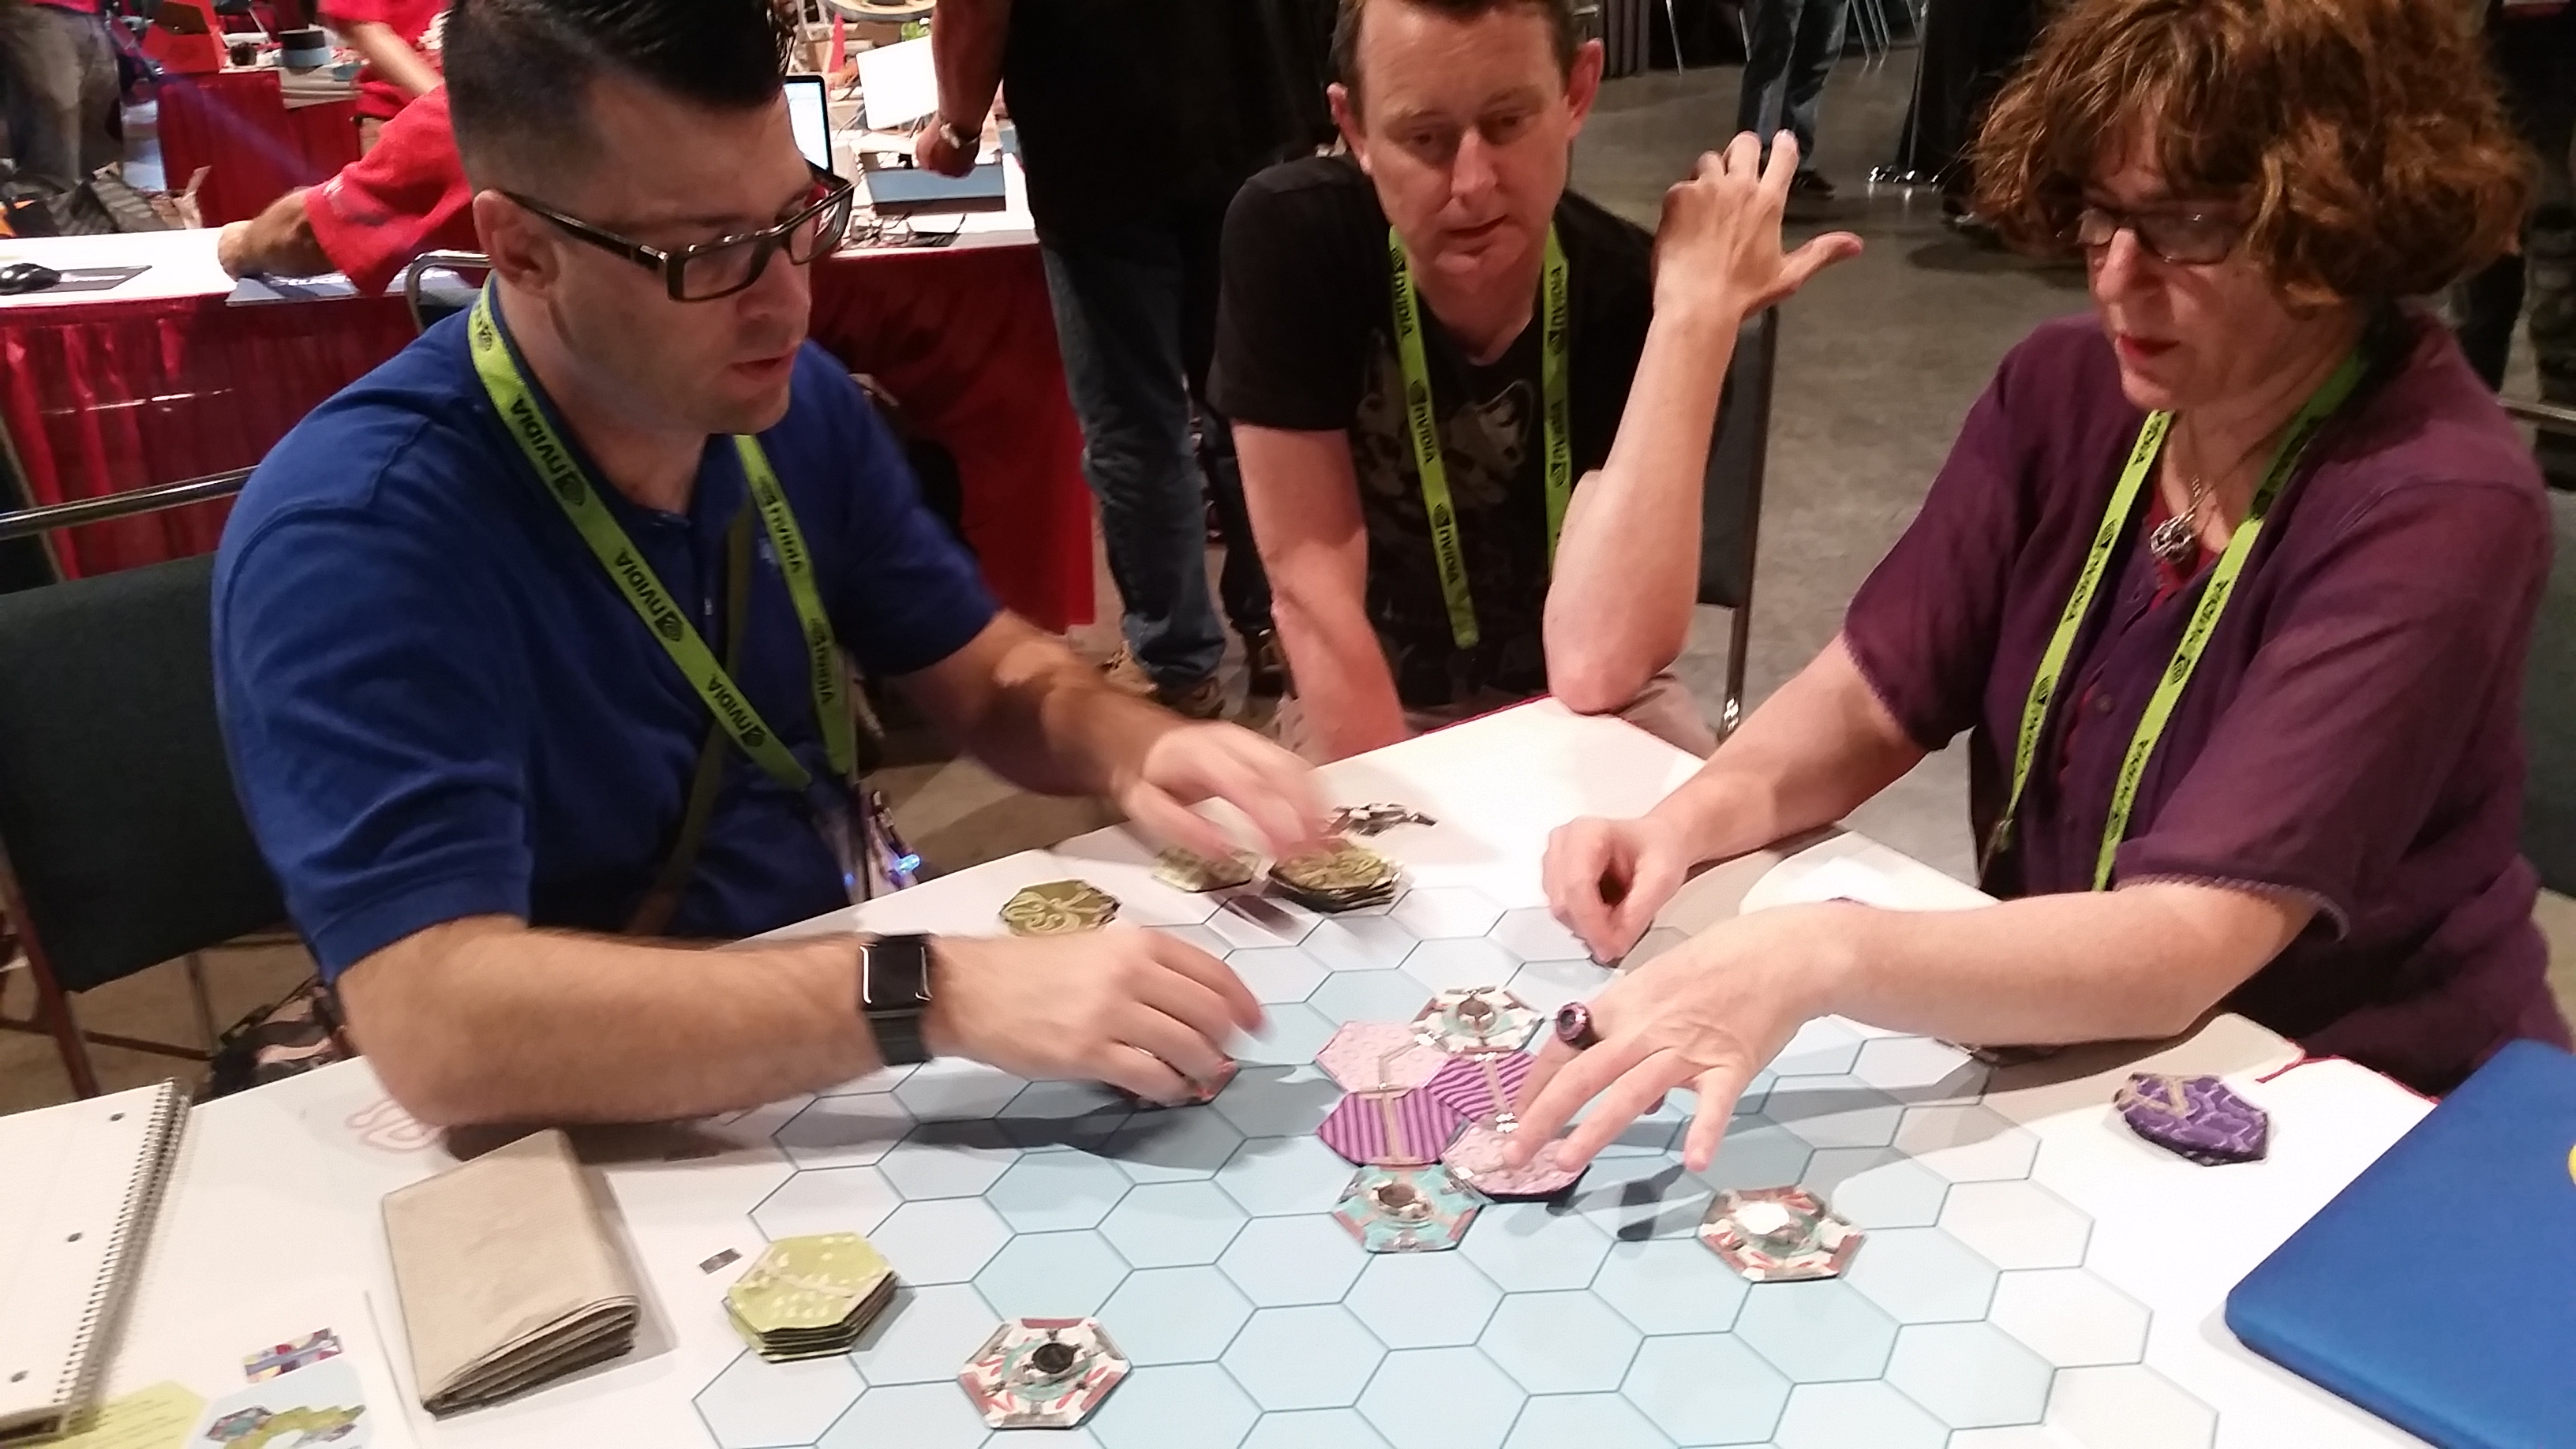 Players at SIGGRAPH playing with eBee